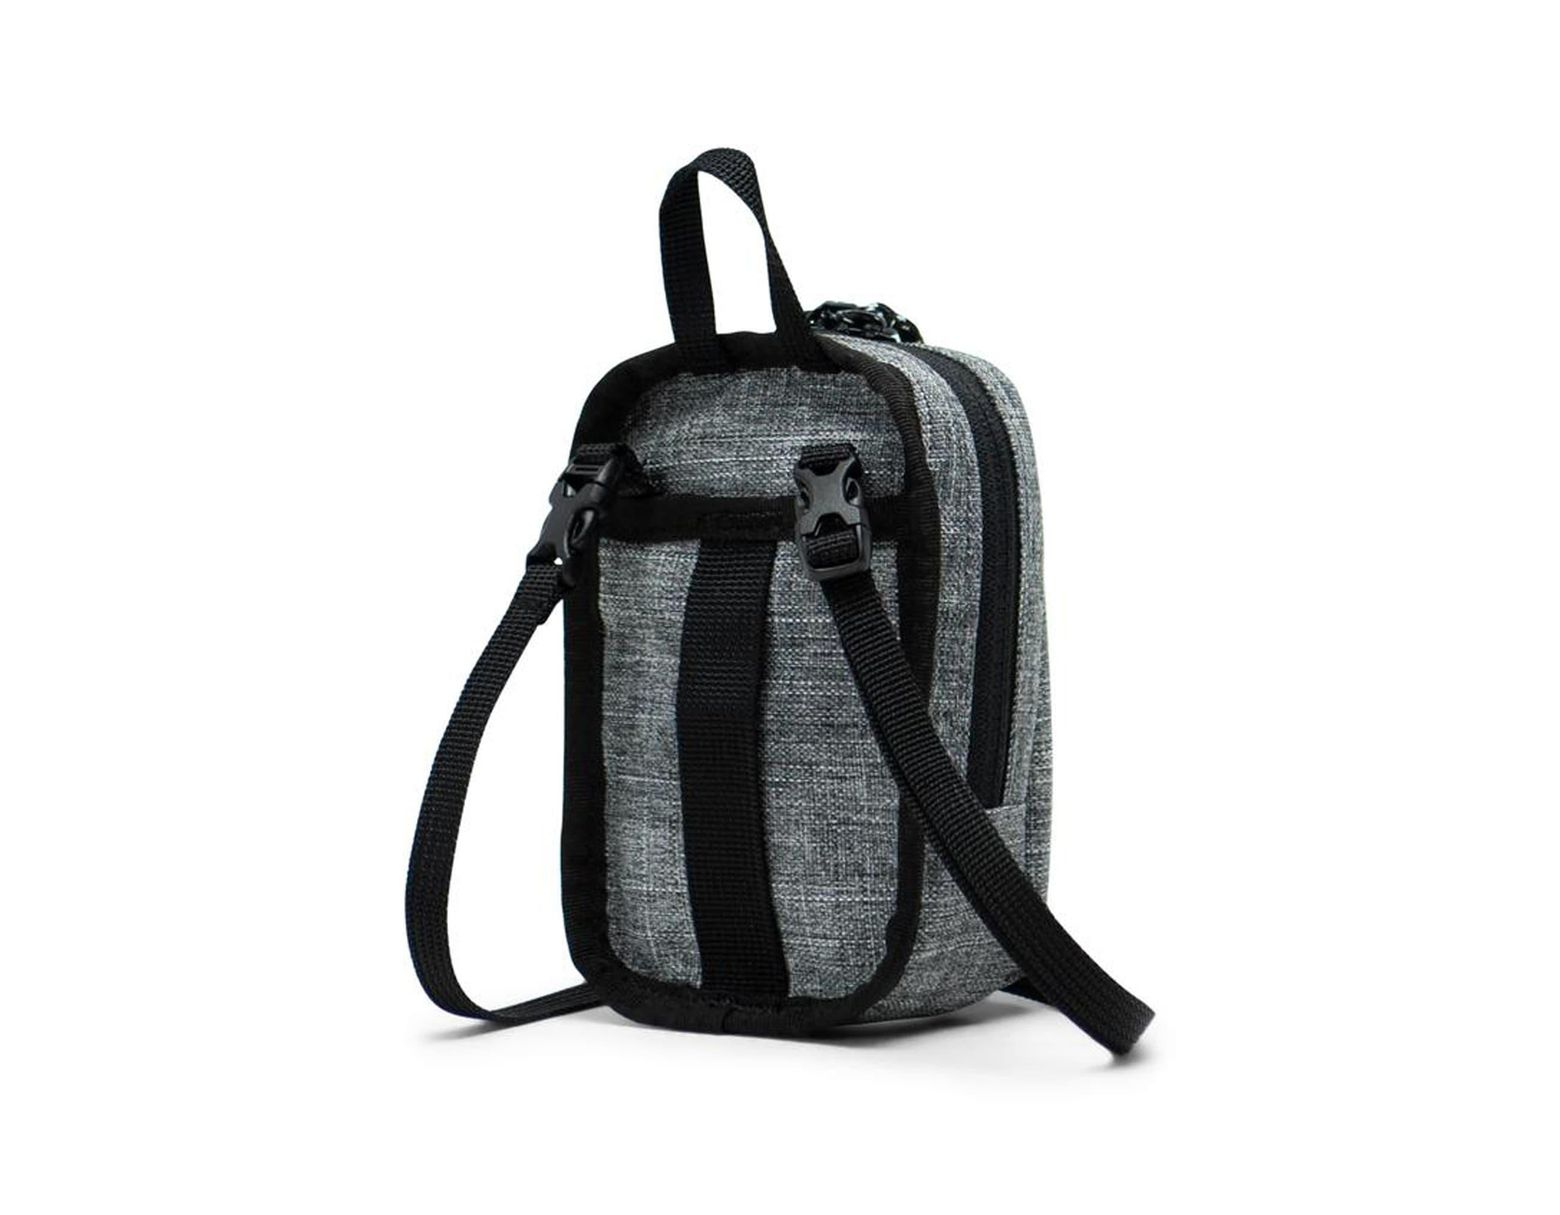 a55eebbeb7a5 Herschel Supply Co. Small Form Shoulder Bag in Black for Men - Lyst